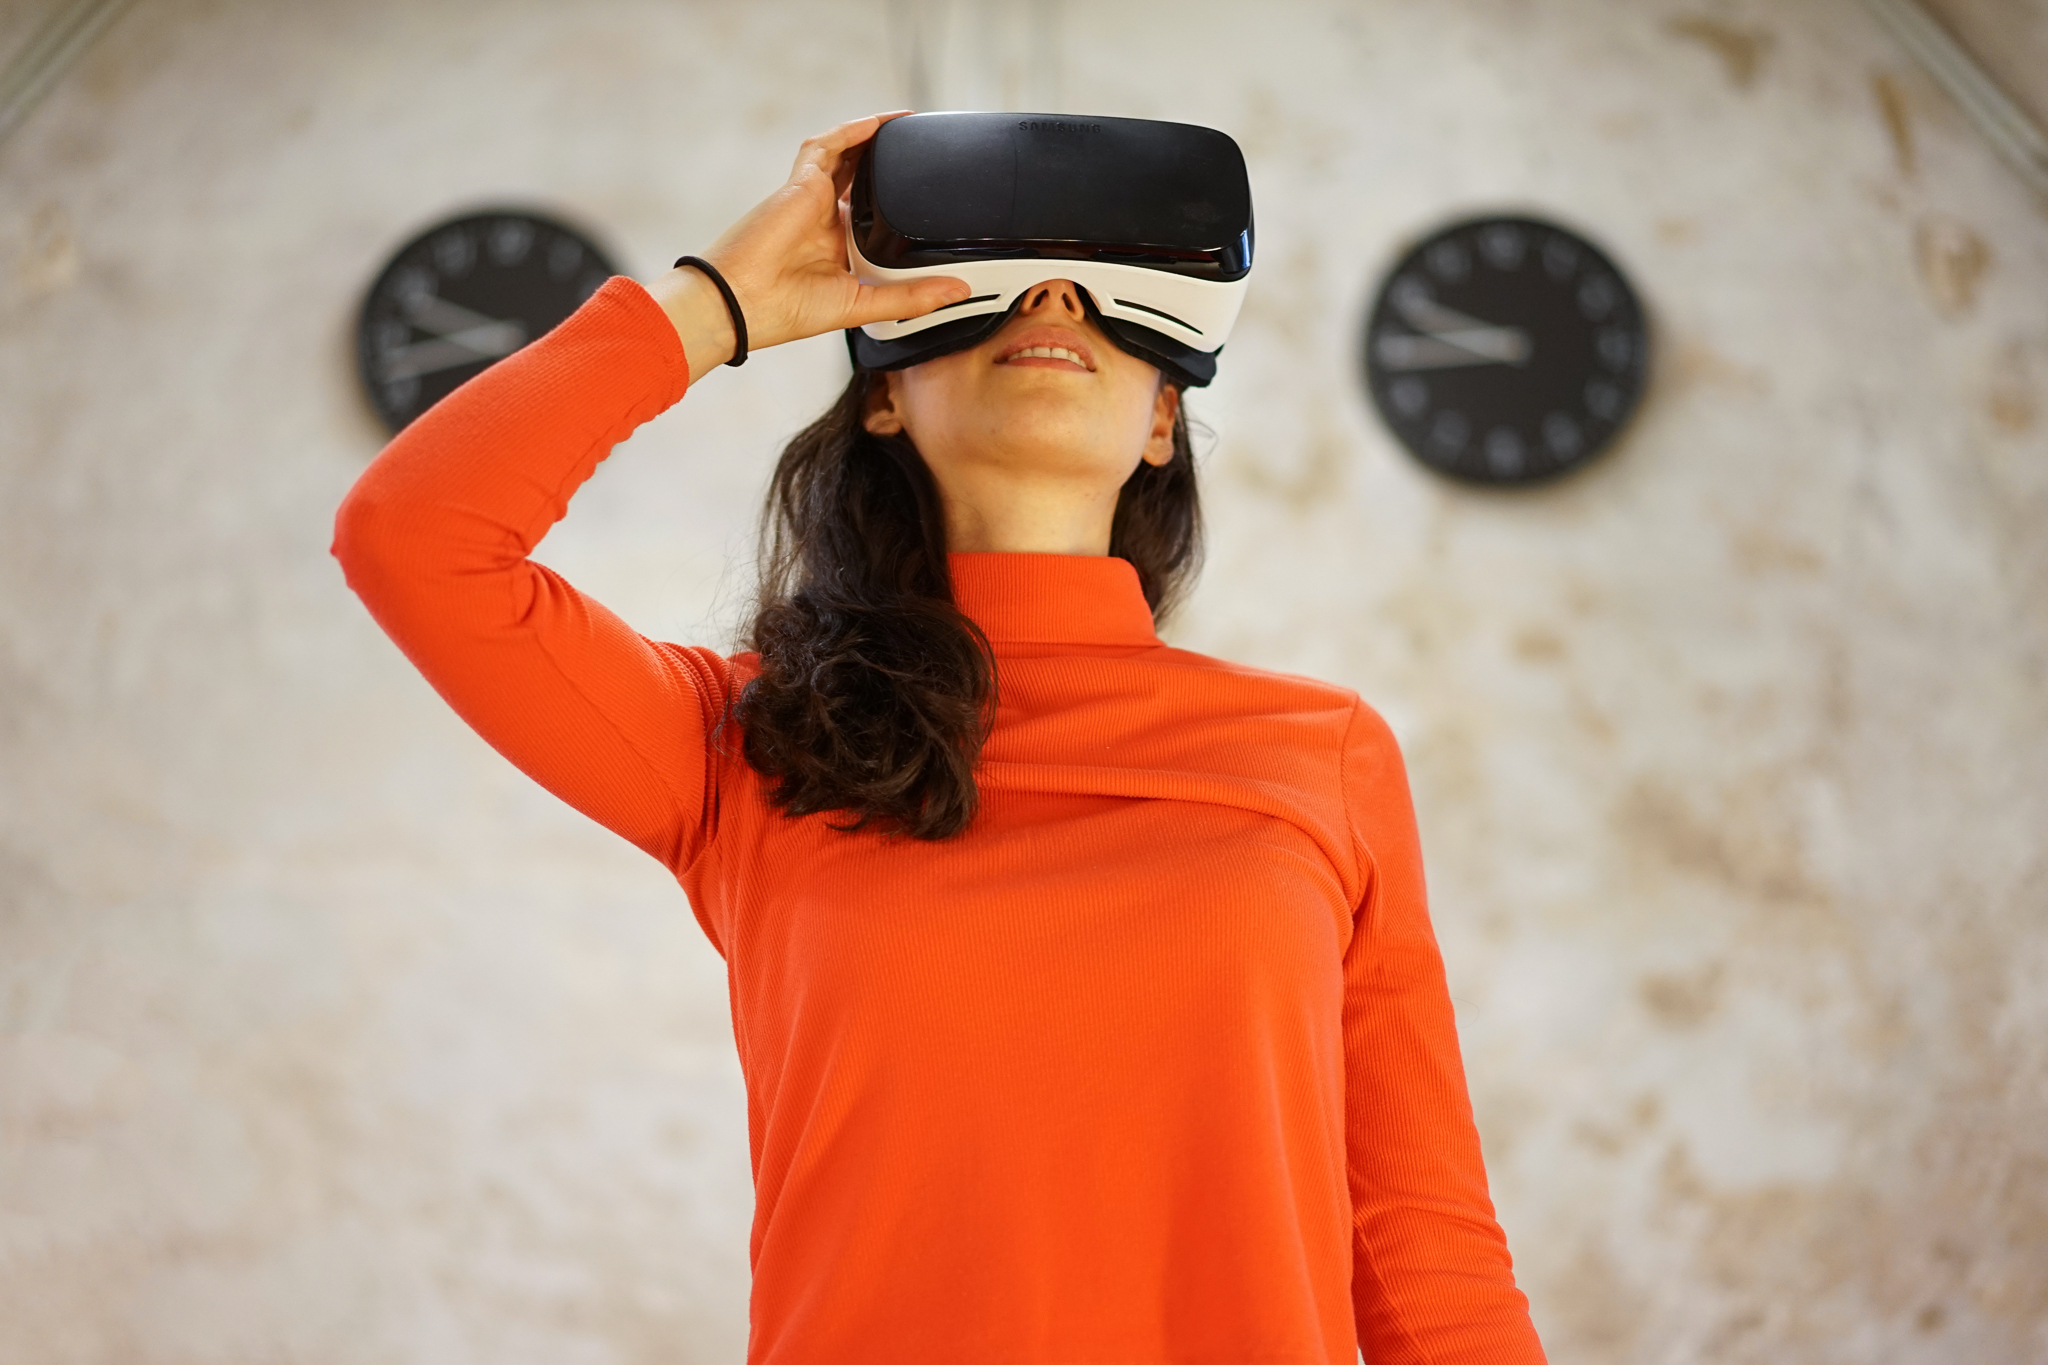 AllWomen - woman using virtual reality glasses vr